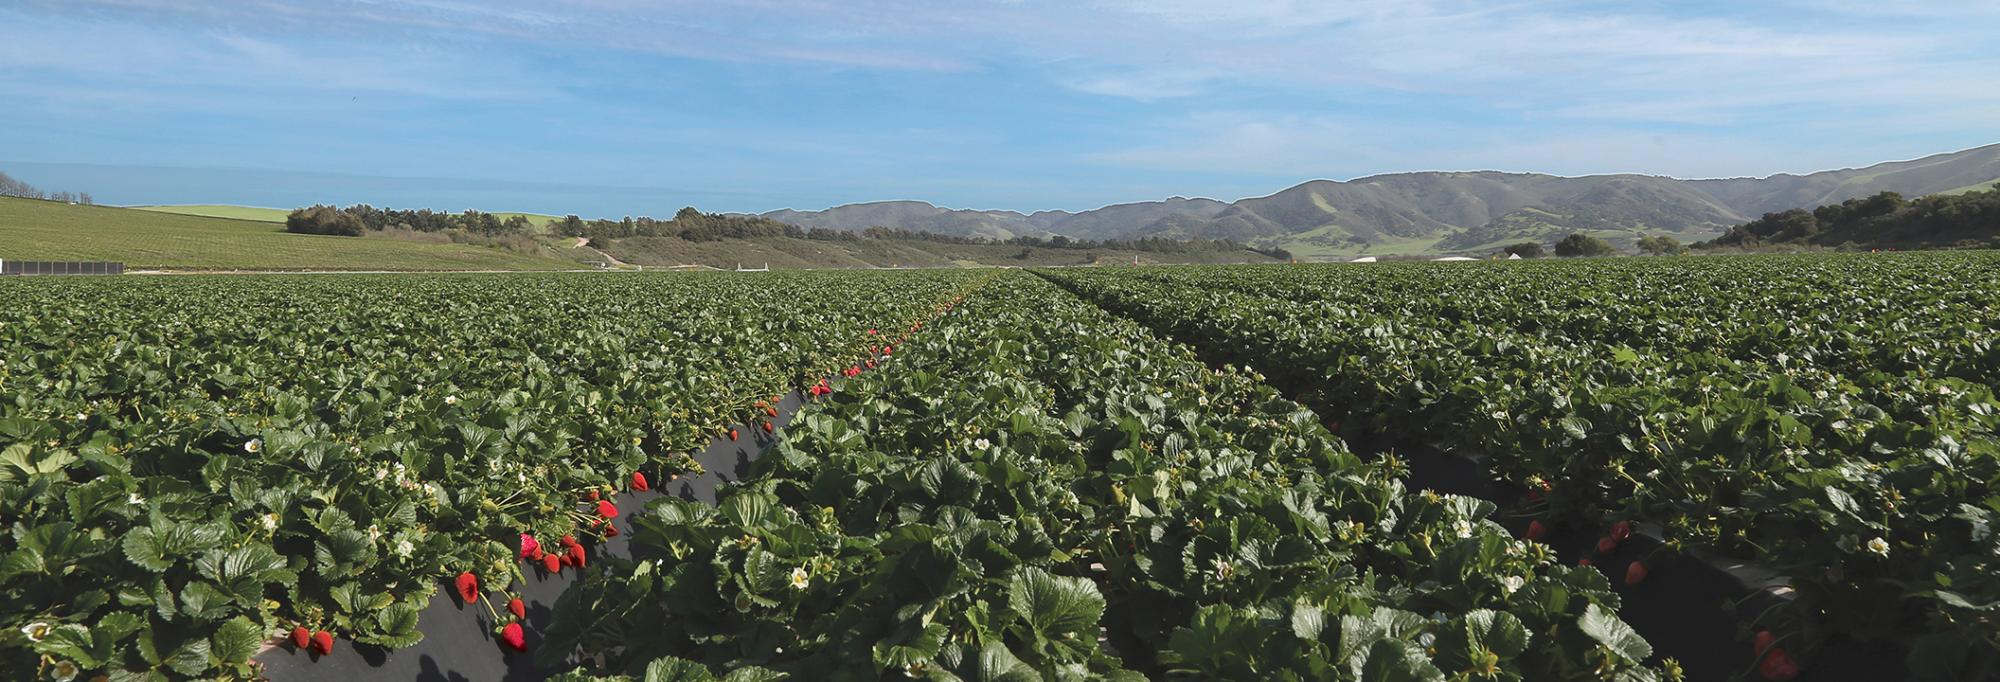 A strawberry field in Santa Maria, Ca